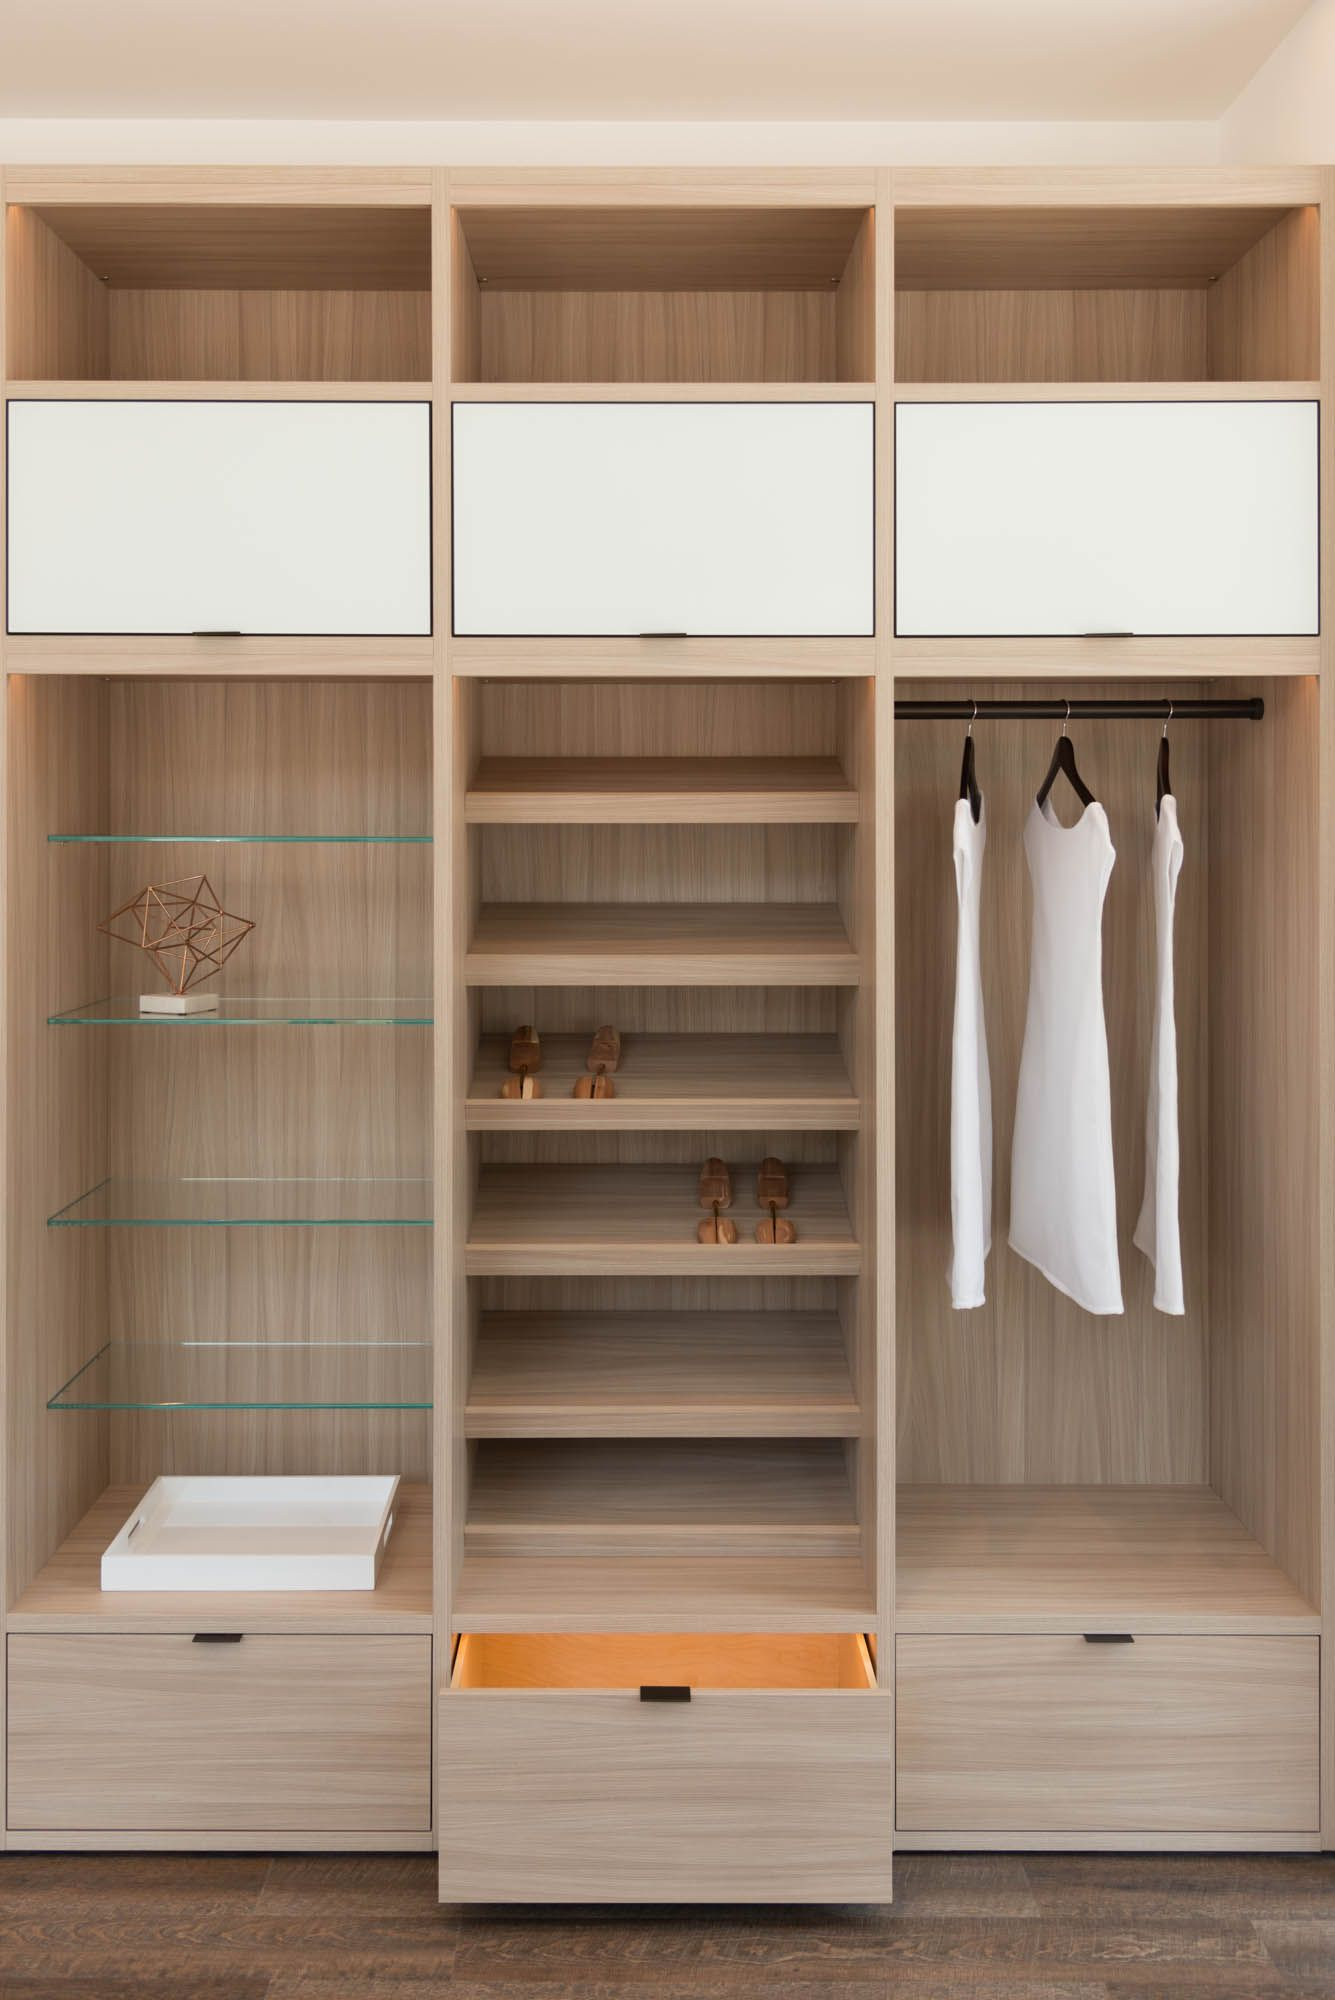 Come Find Inspiration And Meet Our Designers At Our Newly Renovated Tribeca Showroom 2 0 Located Closet Storage Design Closet Designs Closet Storage Systems